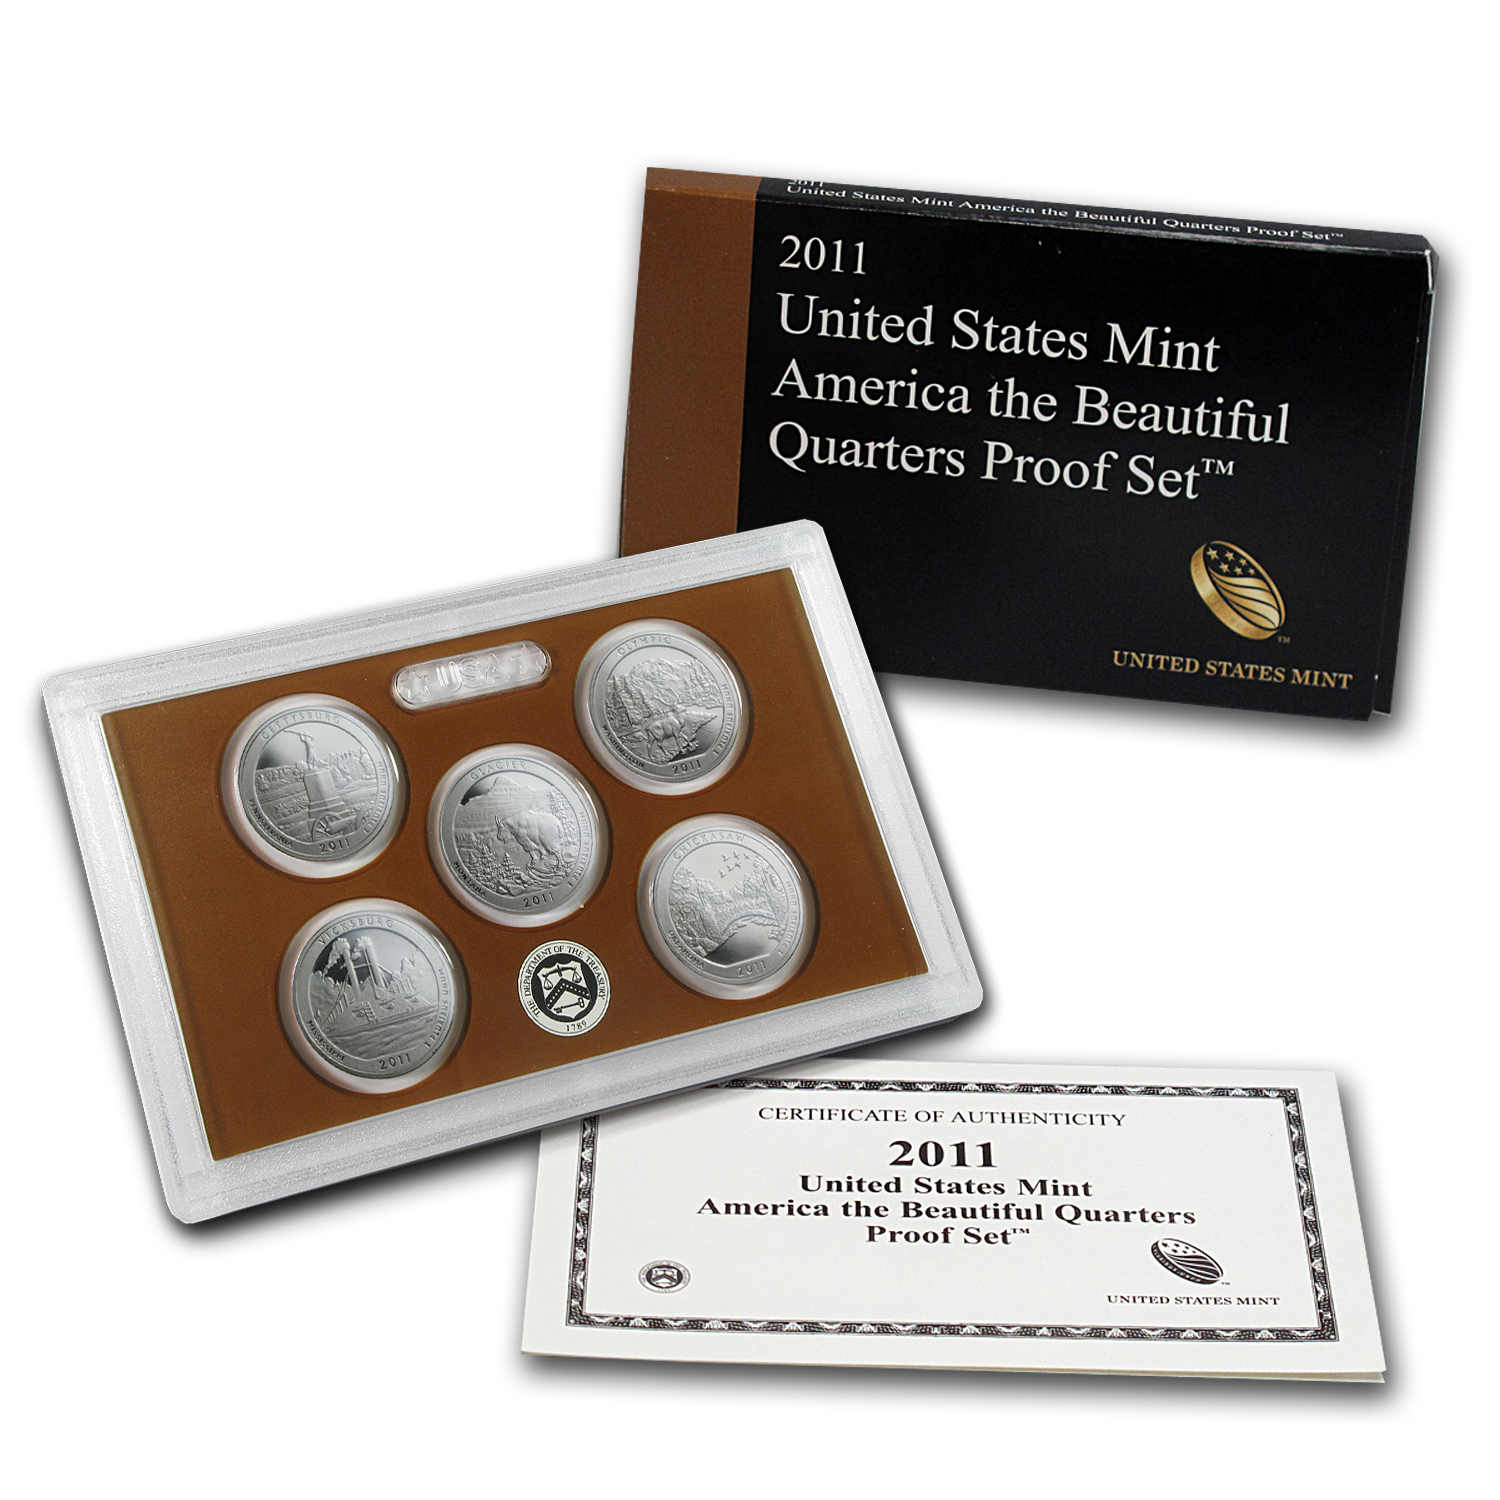 2011 America the Beautiful Quarters Proof Set